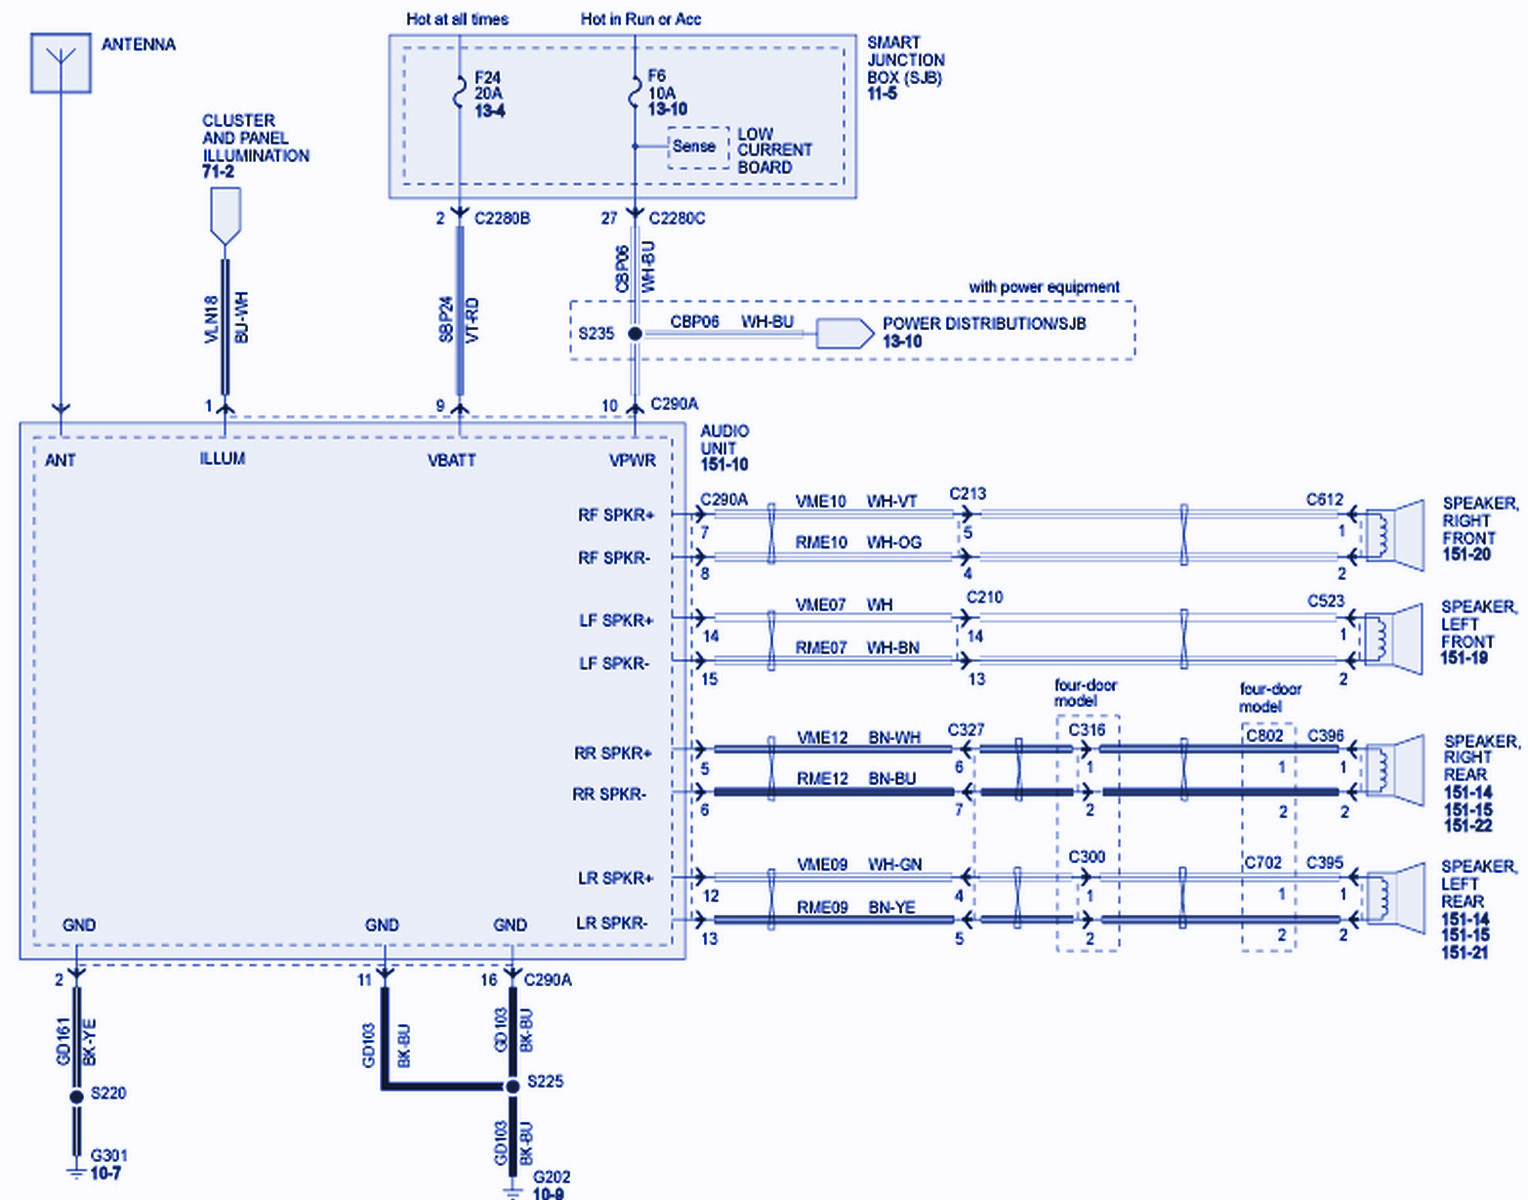 2010 Ford Ranger XL Wiring Diagram | Auto Wiring Diagrams